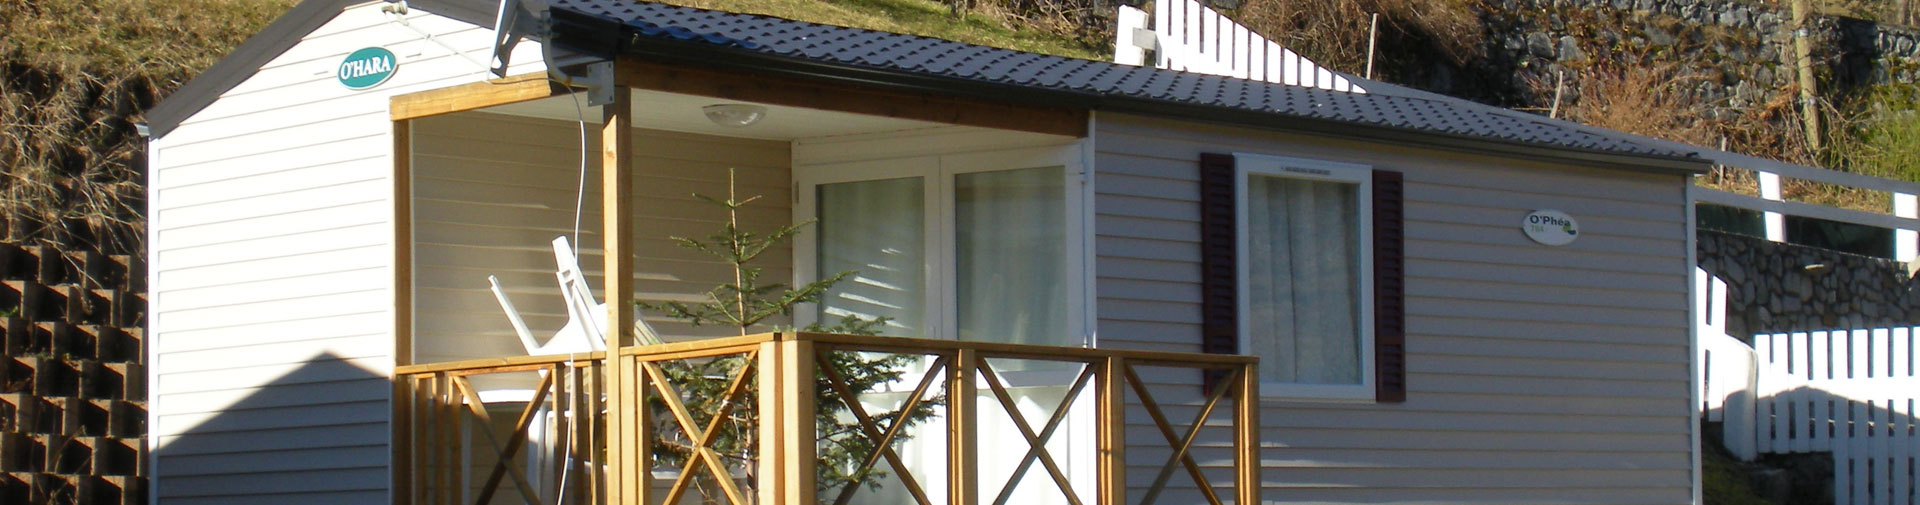 mobil home ohara 2 chambres 4 5 personnes terrasse couverte camping oree des monts hautes pyrenees slide